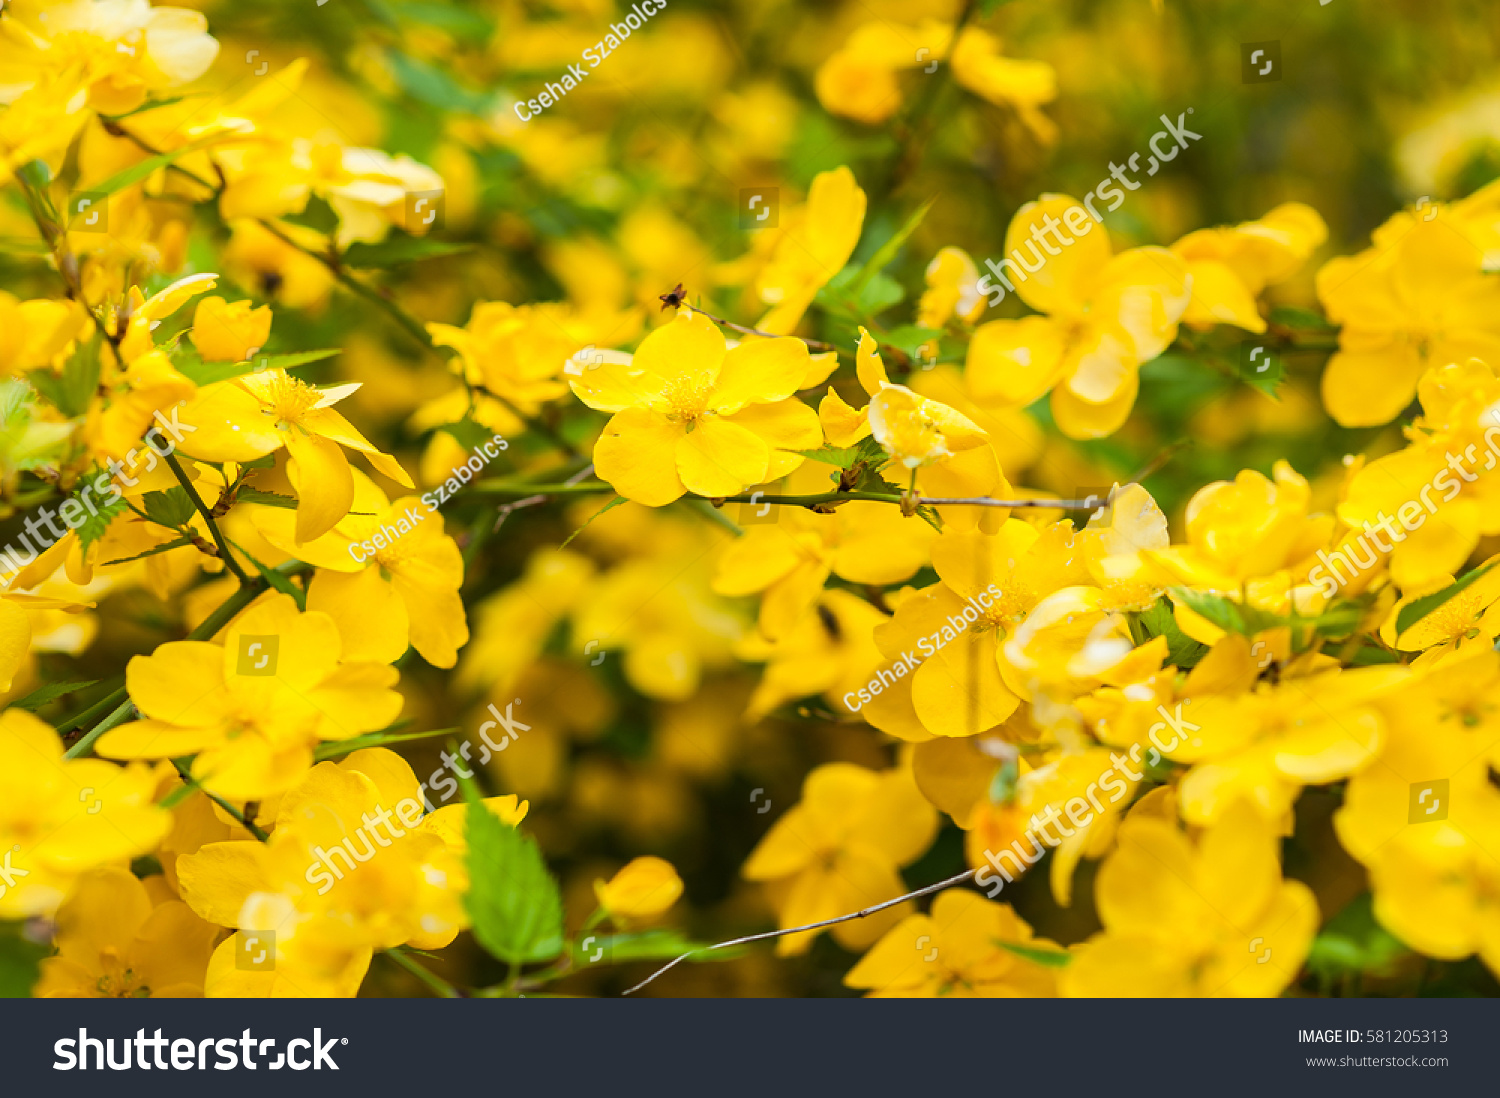 Beautiful Bush With A Lot Of Small Yellow Flowers In The Spring